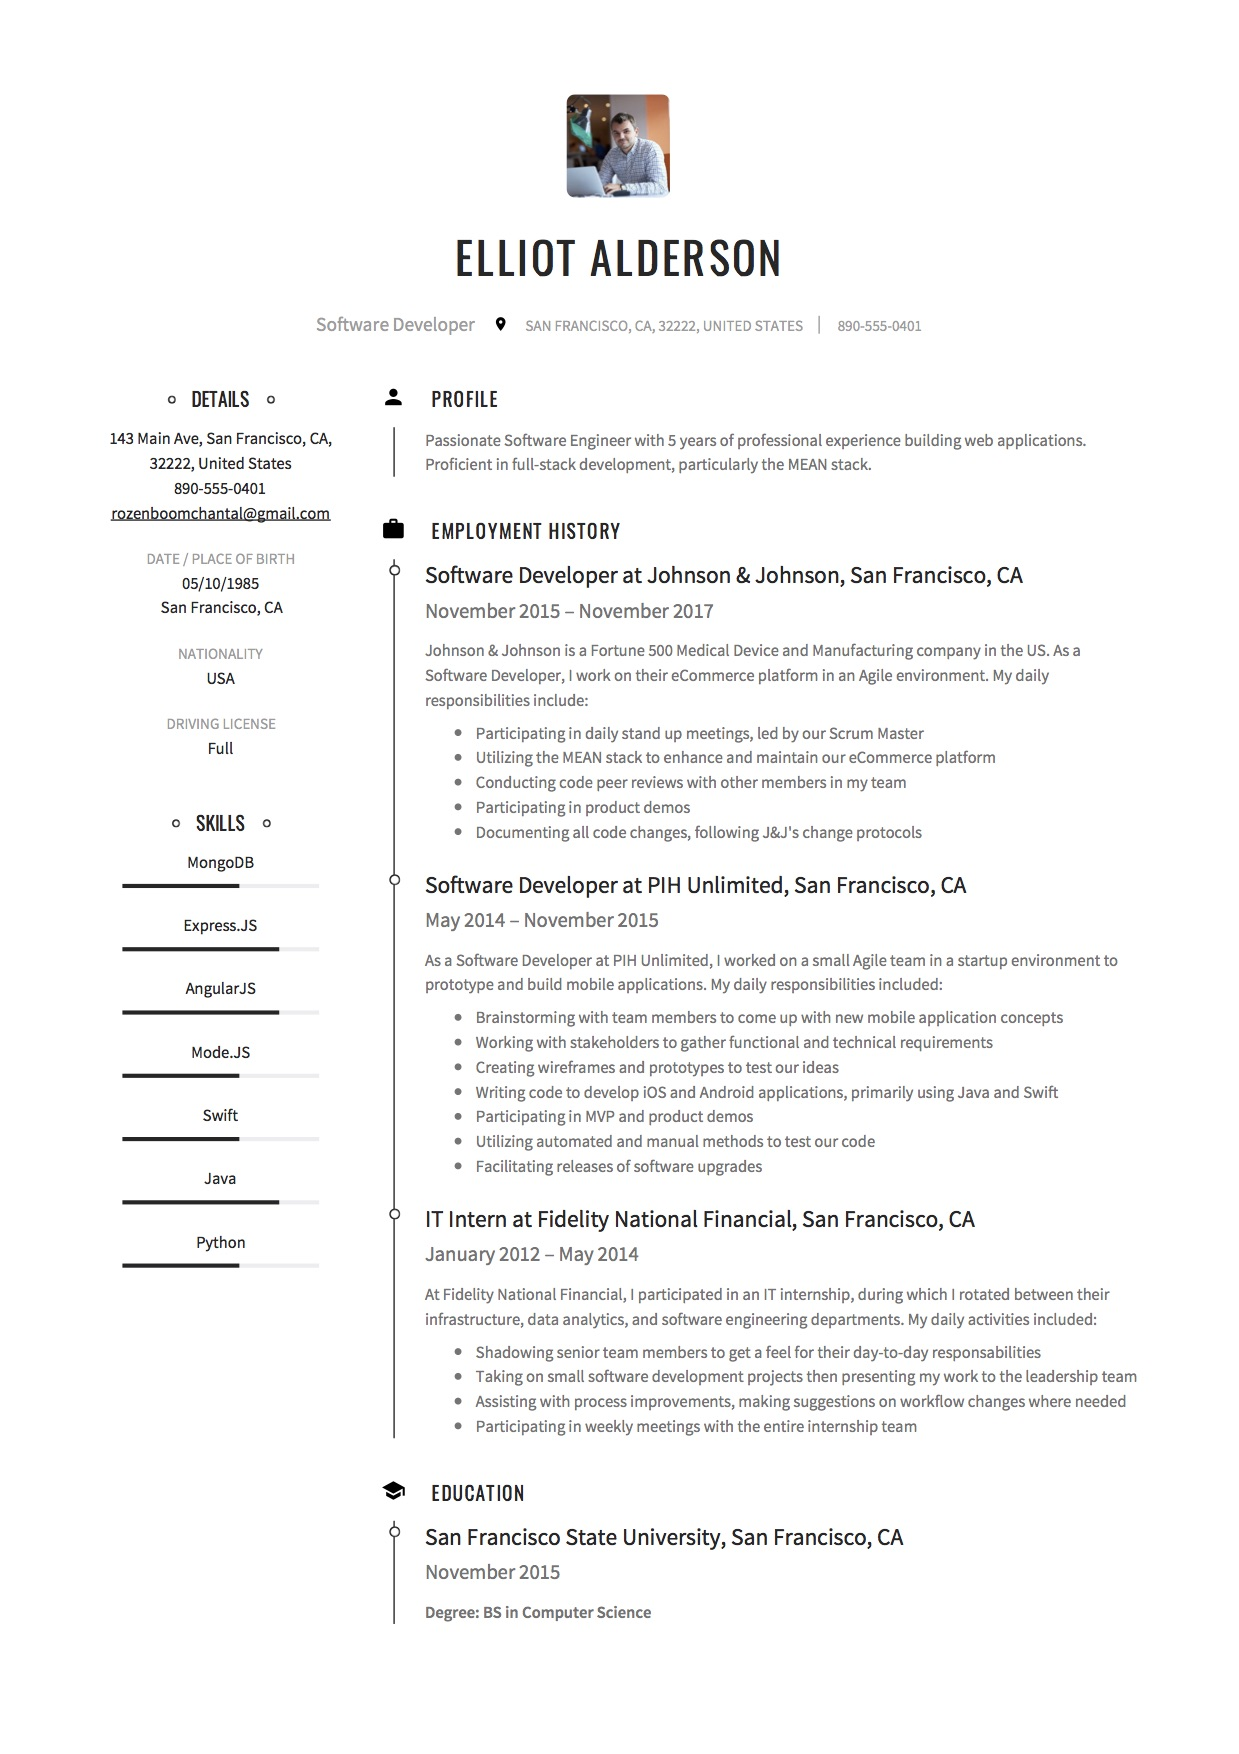 Elliot Alderson   Software Developer Resume Sample(1)  Application Developer Resume